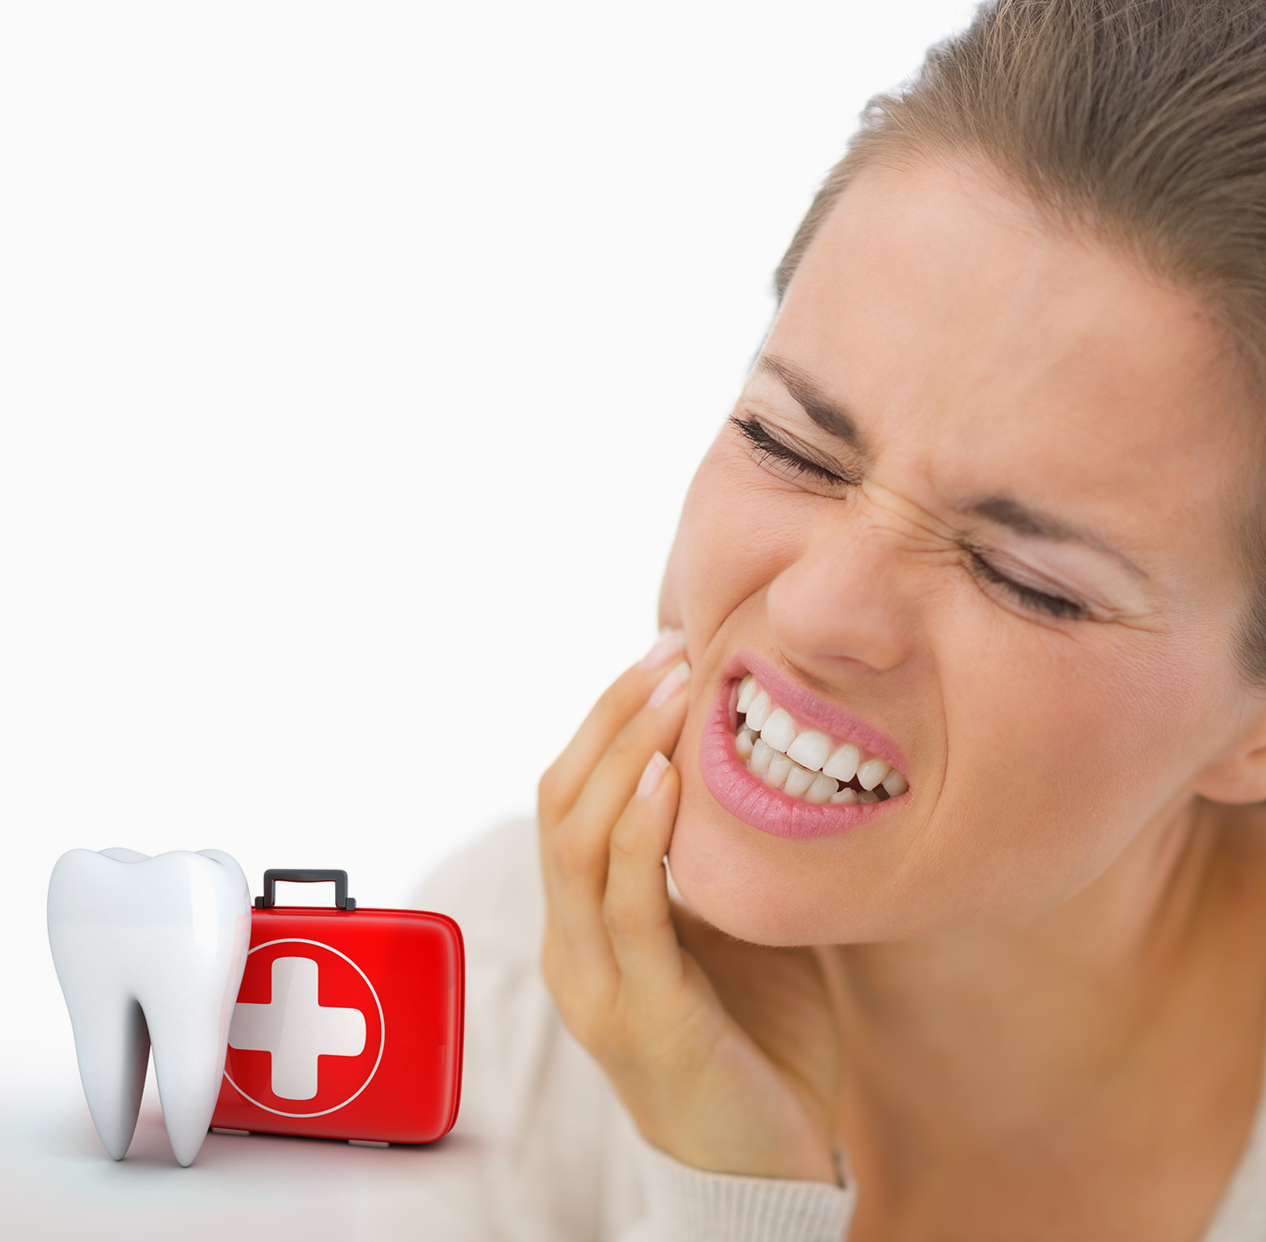 Have You Ever Experienced A Dental Emergency?